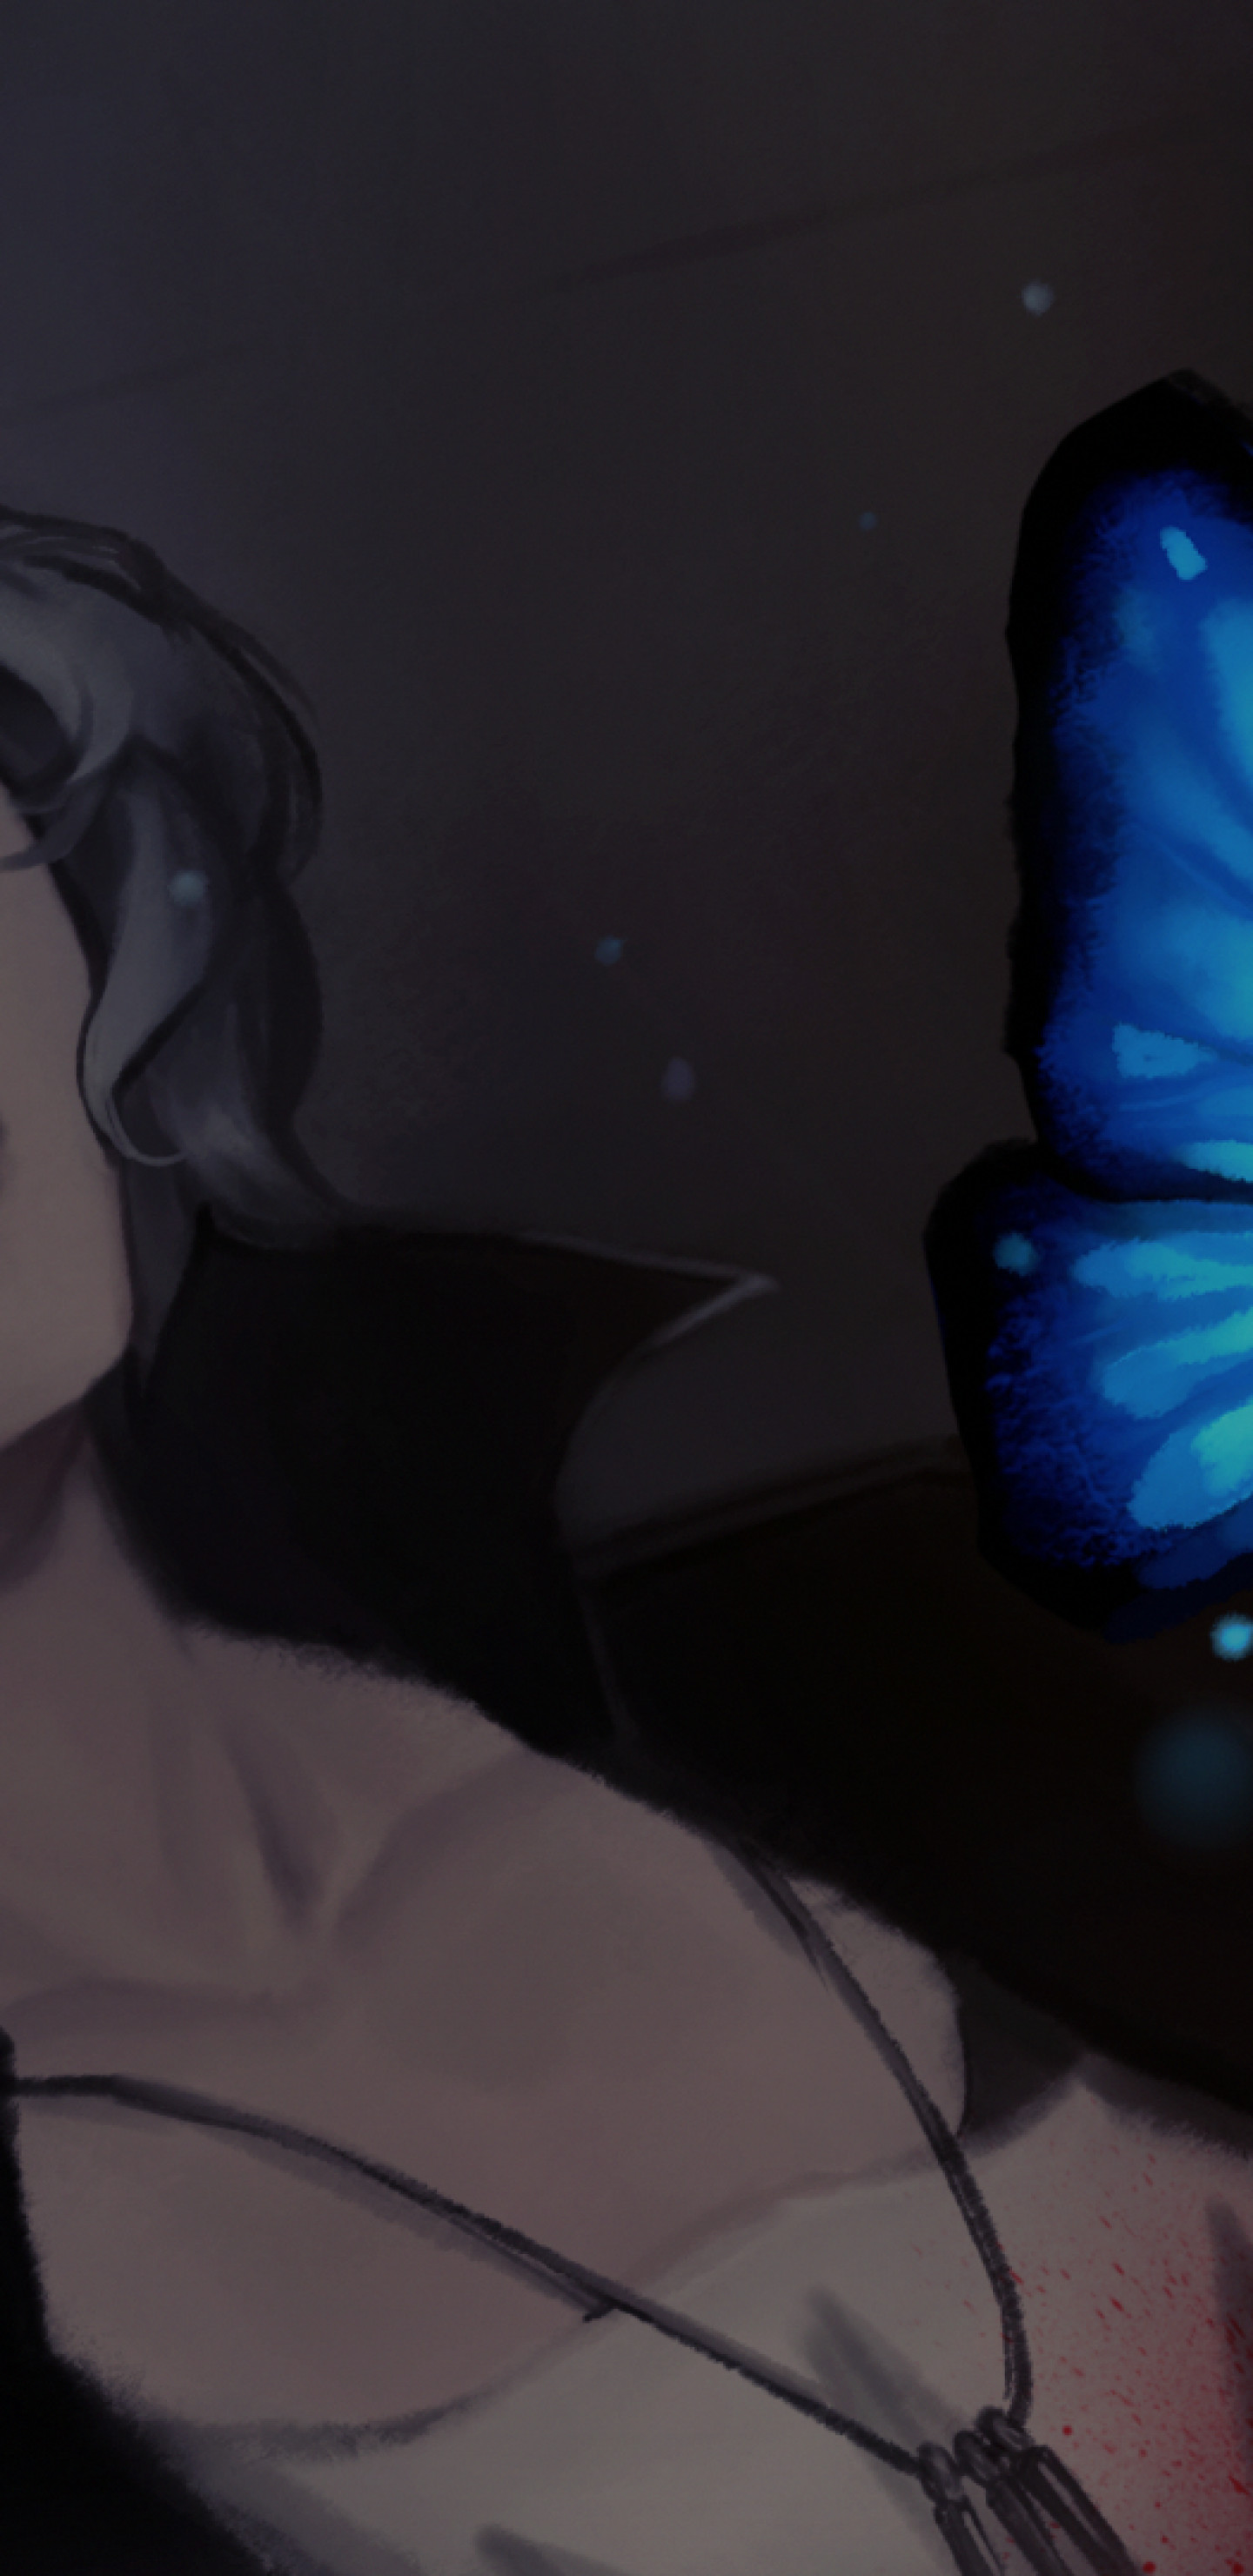 Res: 1440x2960, Life Is Strange, Chloe Price, Blue Butterfly, Artwork